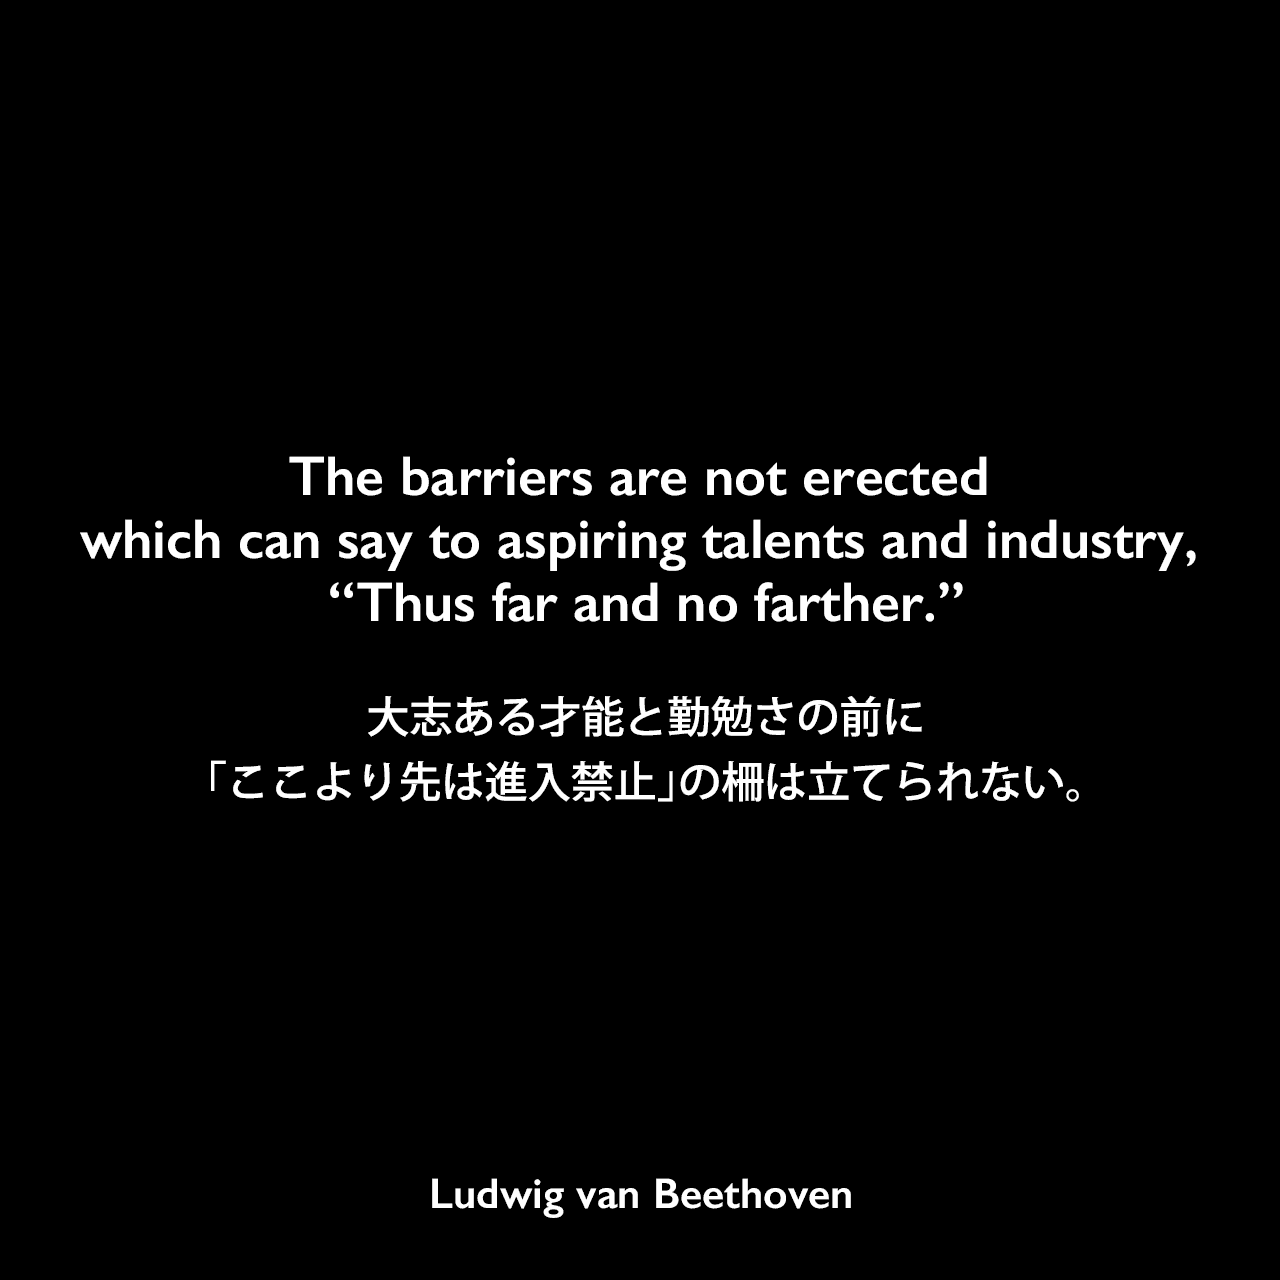 """The barriers are not erected which can say to aspiring talents and industry, """"Thus far and no farther.""""大志ある才能と勤勉さの前に「ここより先は進入禁止」の柵は立てられない。Ludwig van Beethoven"""